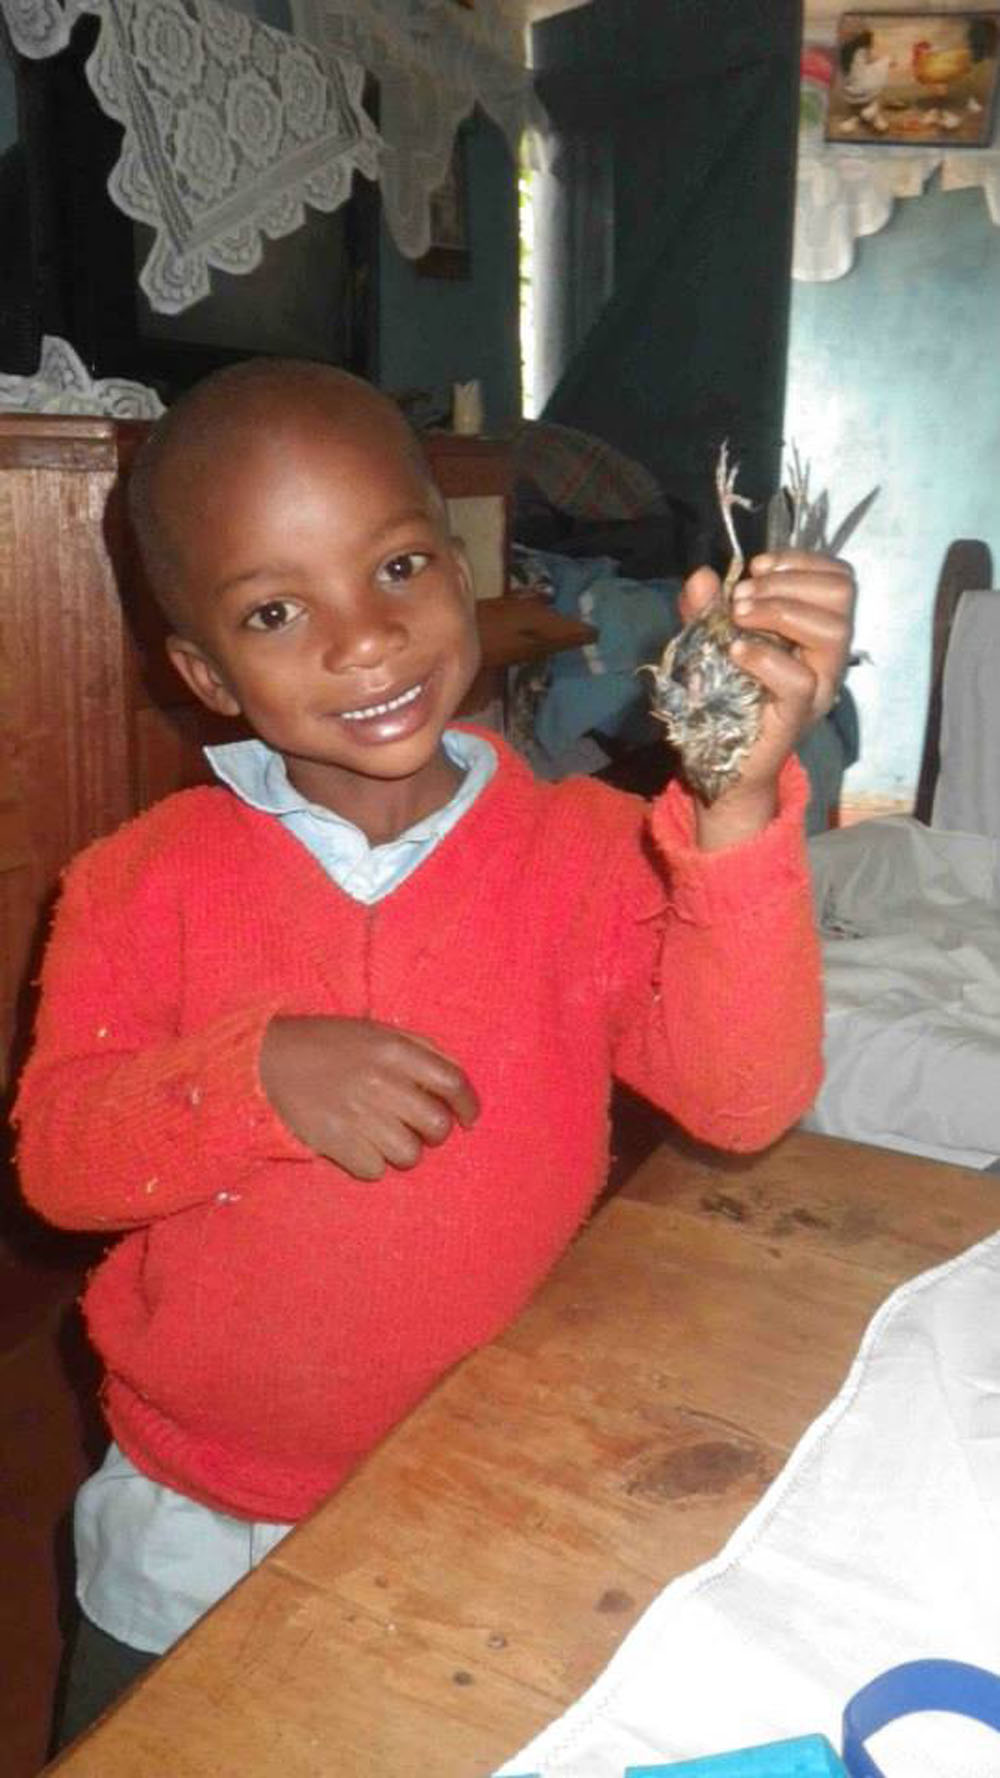 Arrive's youngest orphan, Onyoni, proudly shows off a bird he caught.